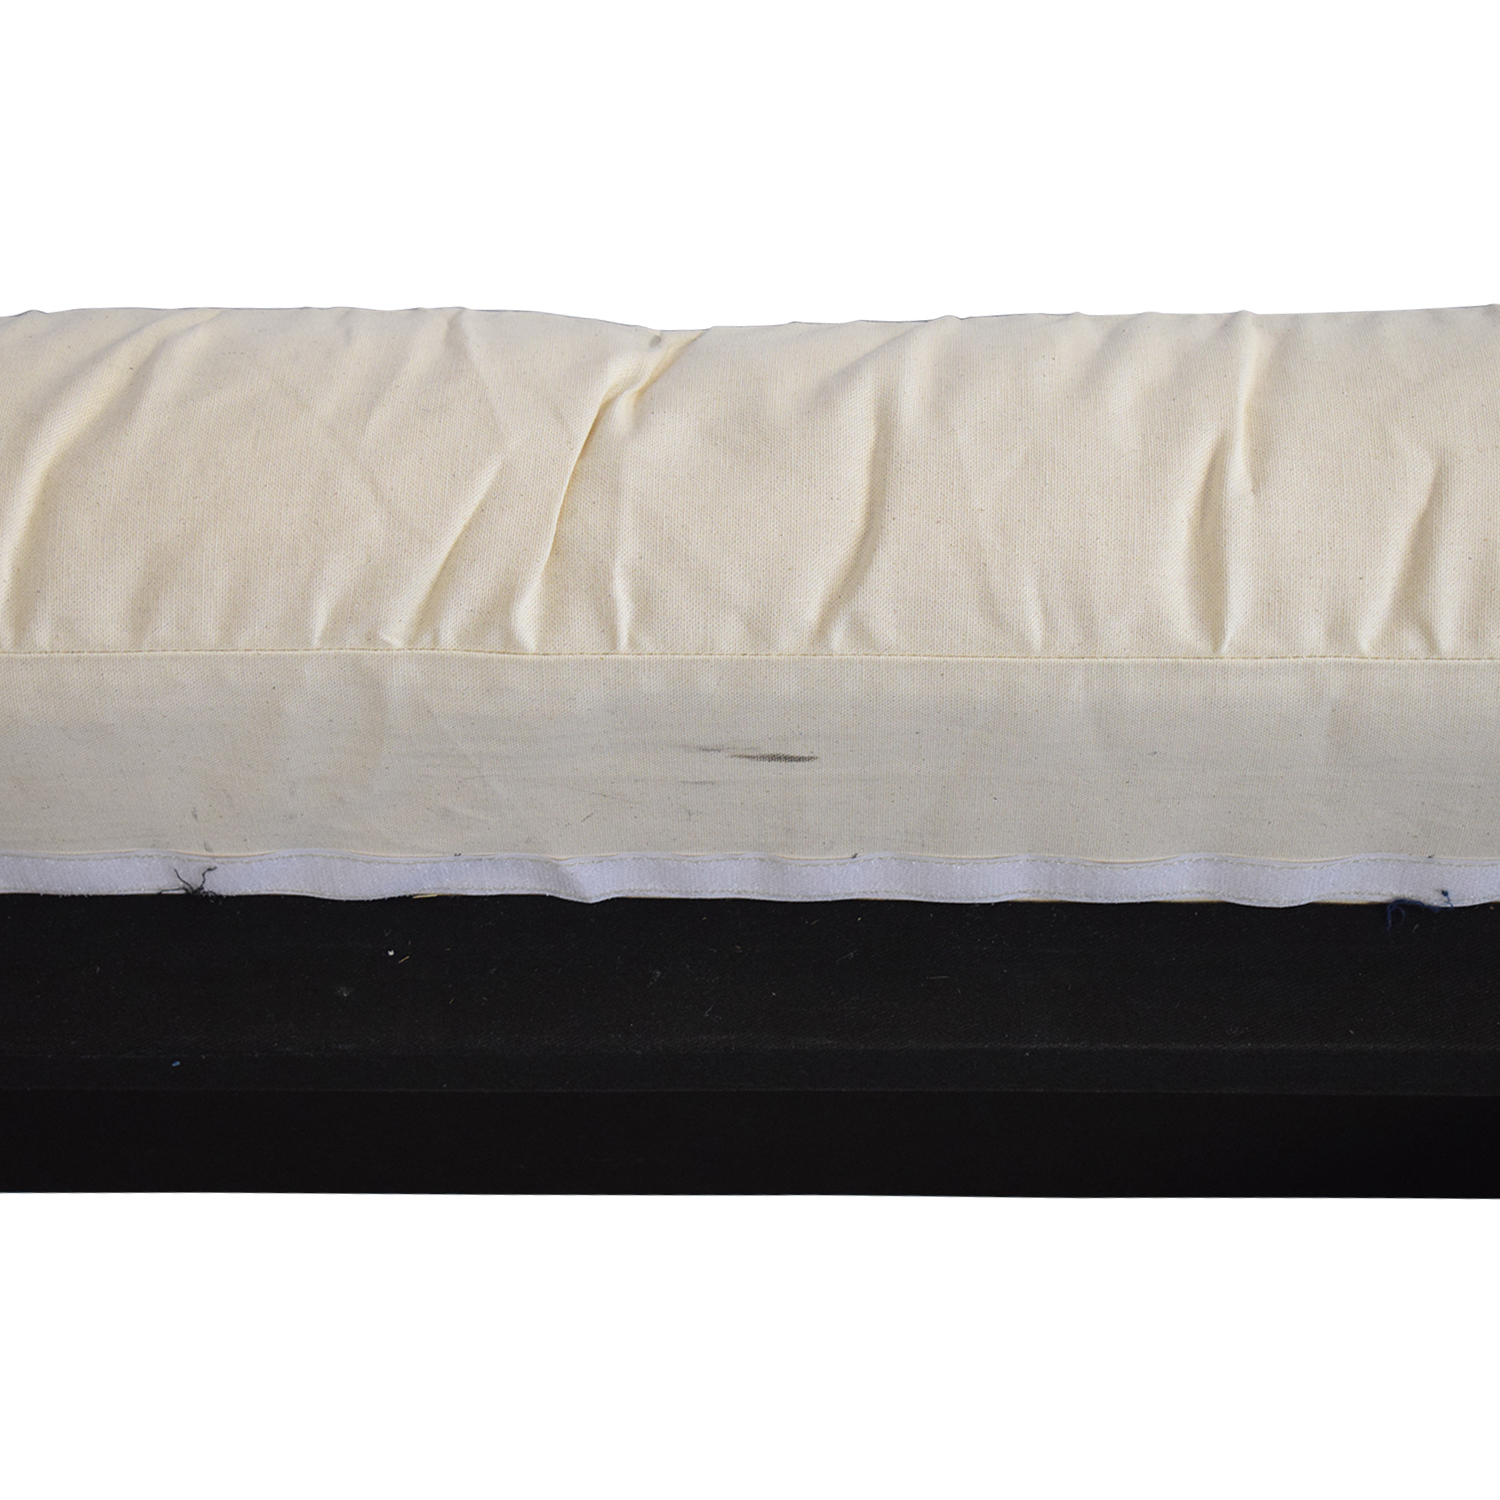 Restoration Hardware Restoration Hardware Sona Upholstered Platform Twin Bed dimensions